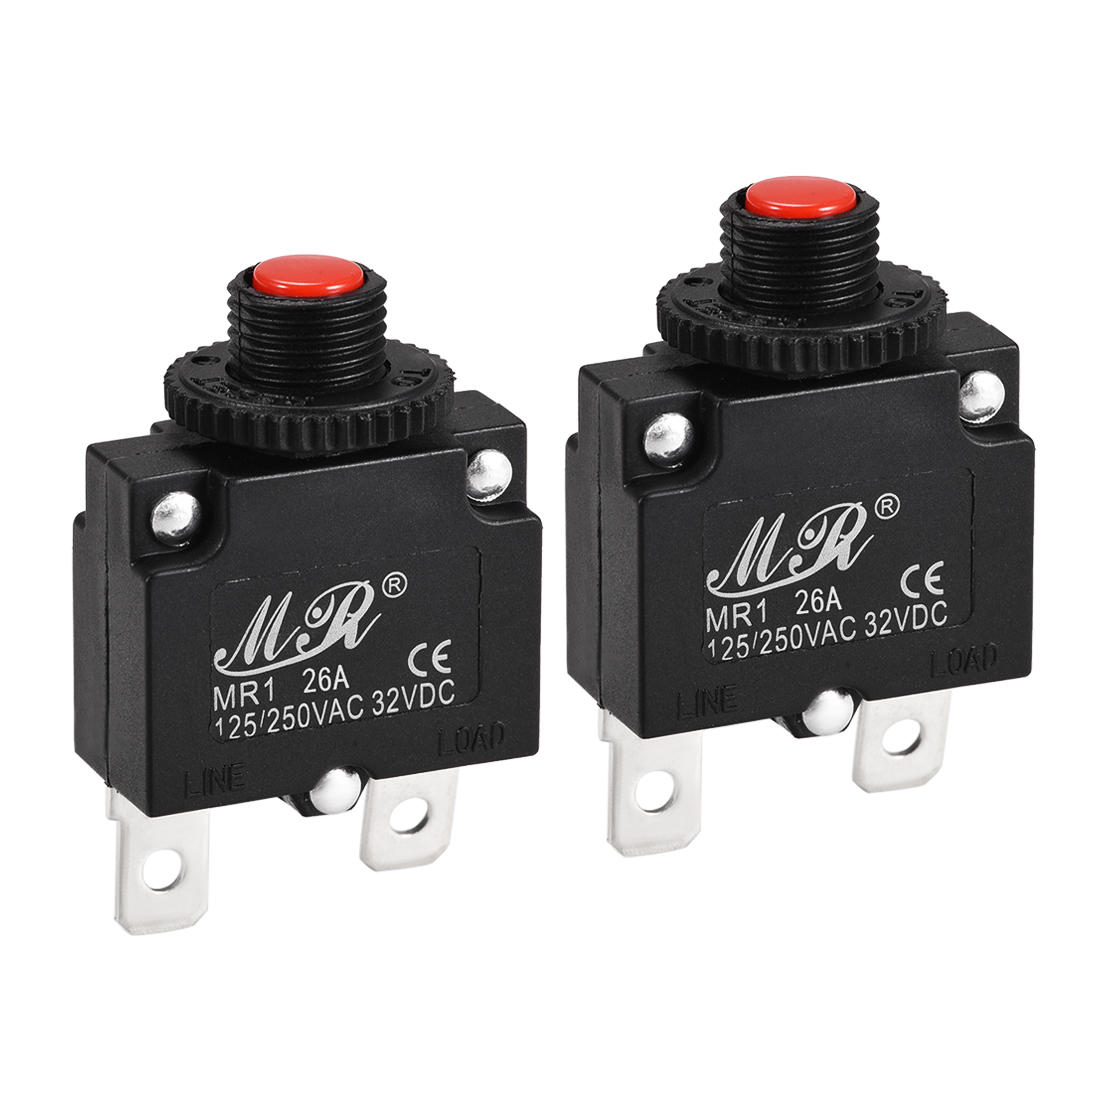 2 Pcs 26A Push Button Manual Reset Overload Protector Thermal Circuit Breakers